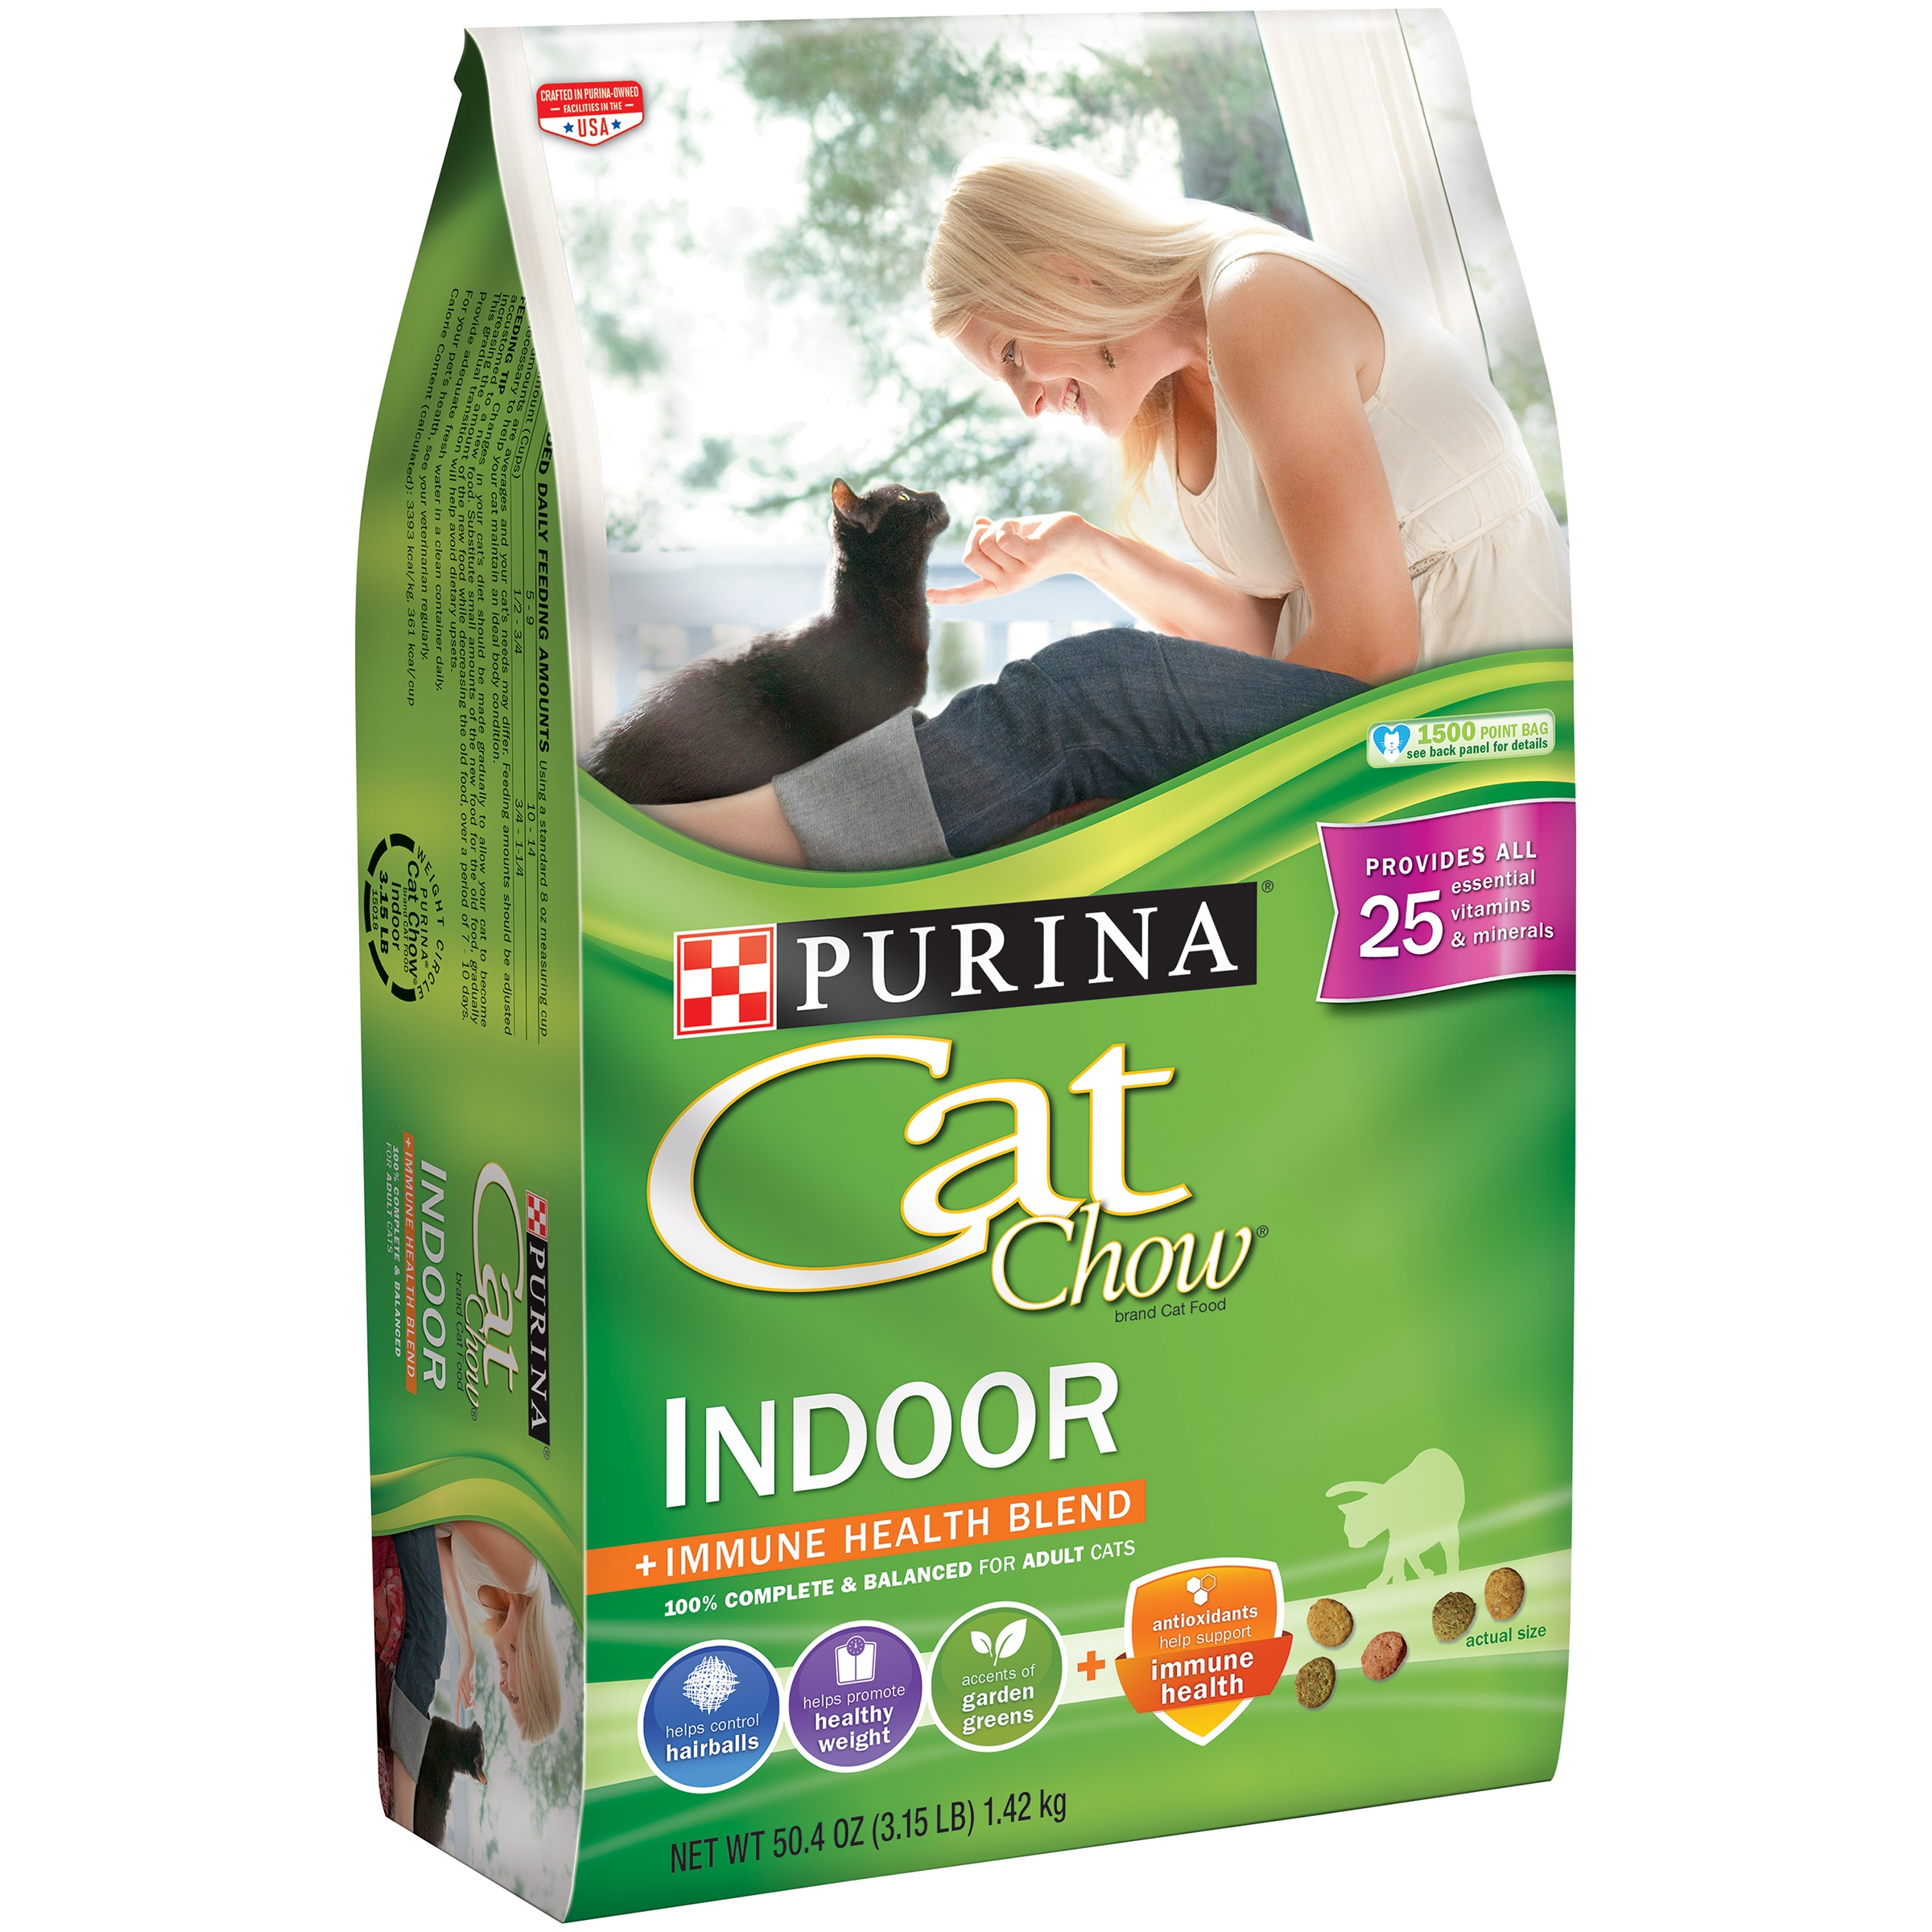 Purina Cat Chow Indoor Cat Food 3.15 lb. Bag